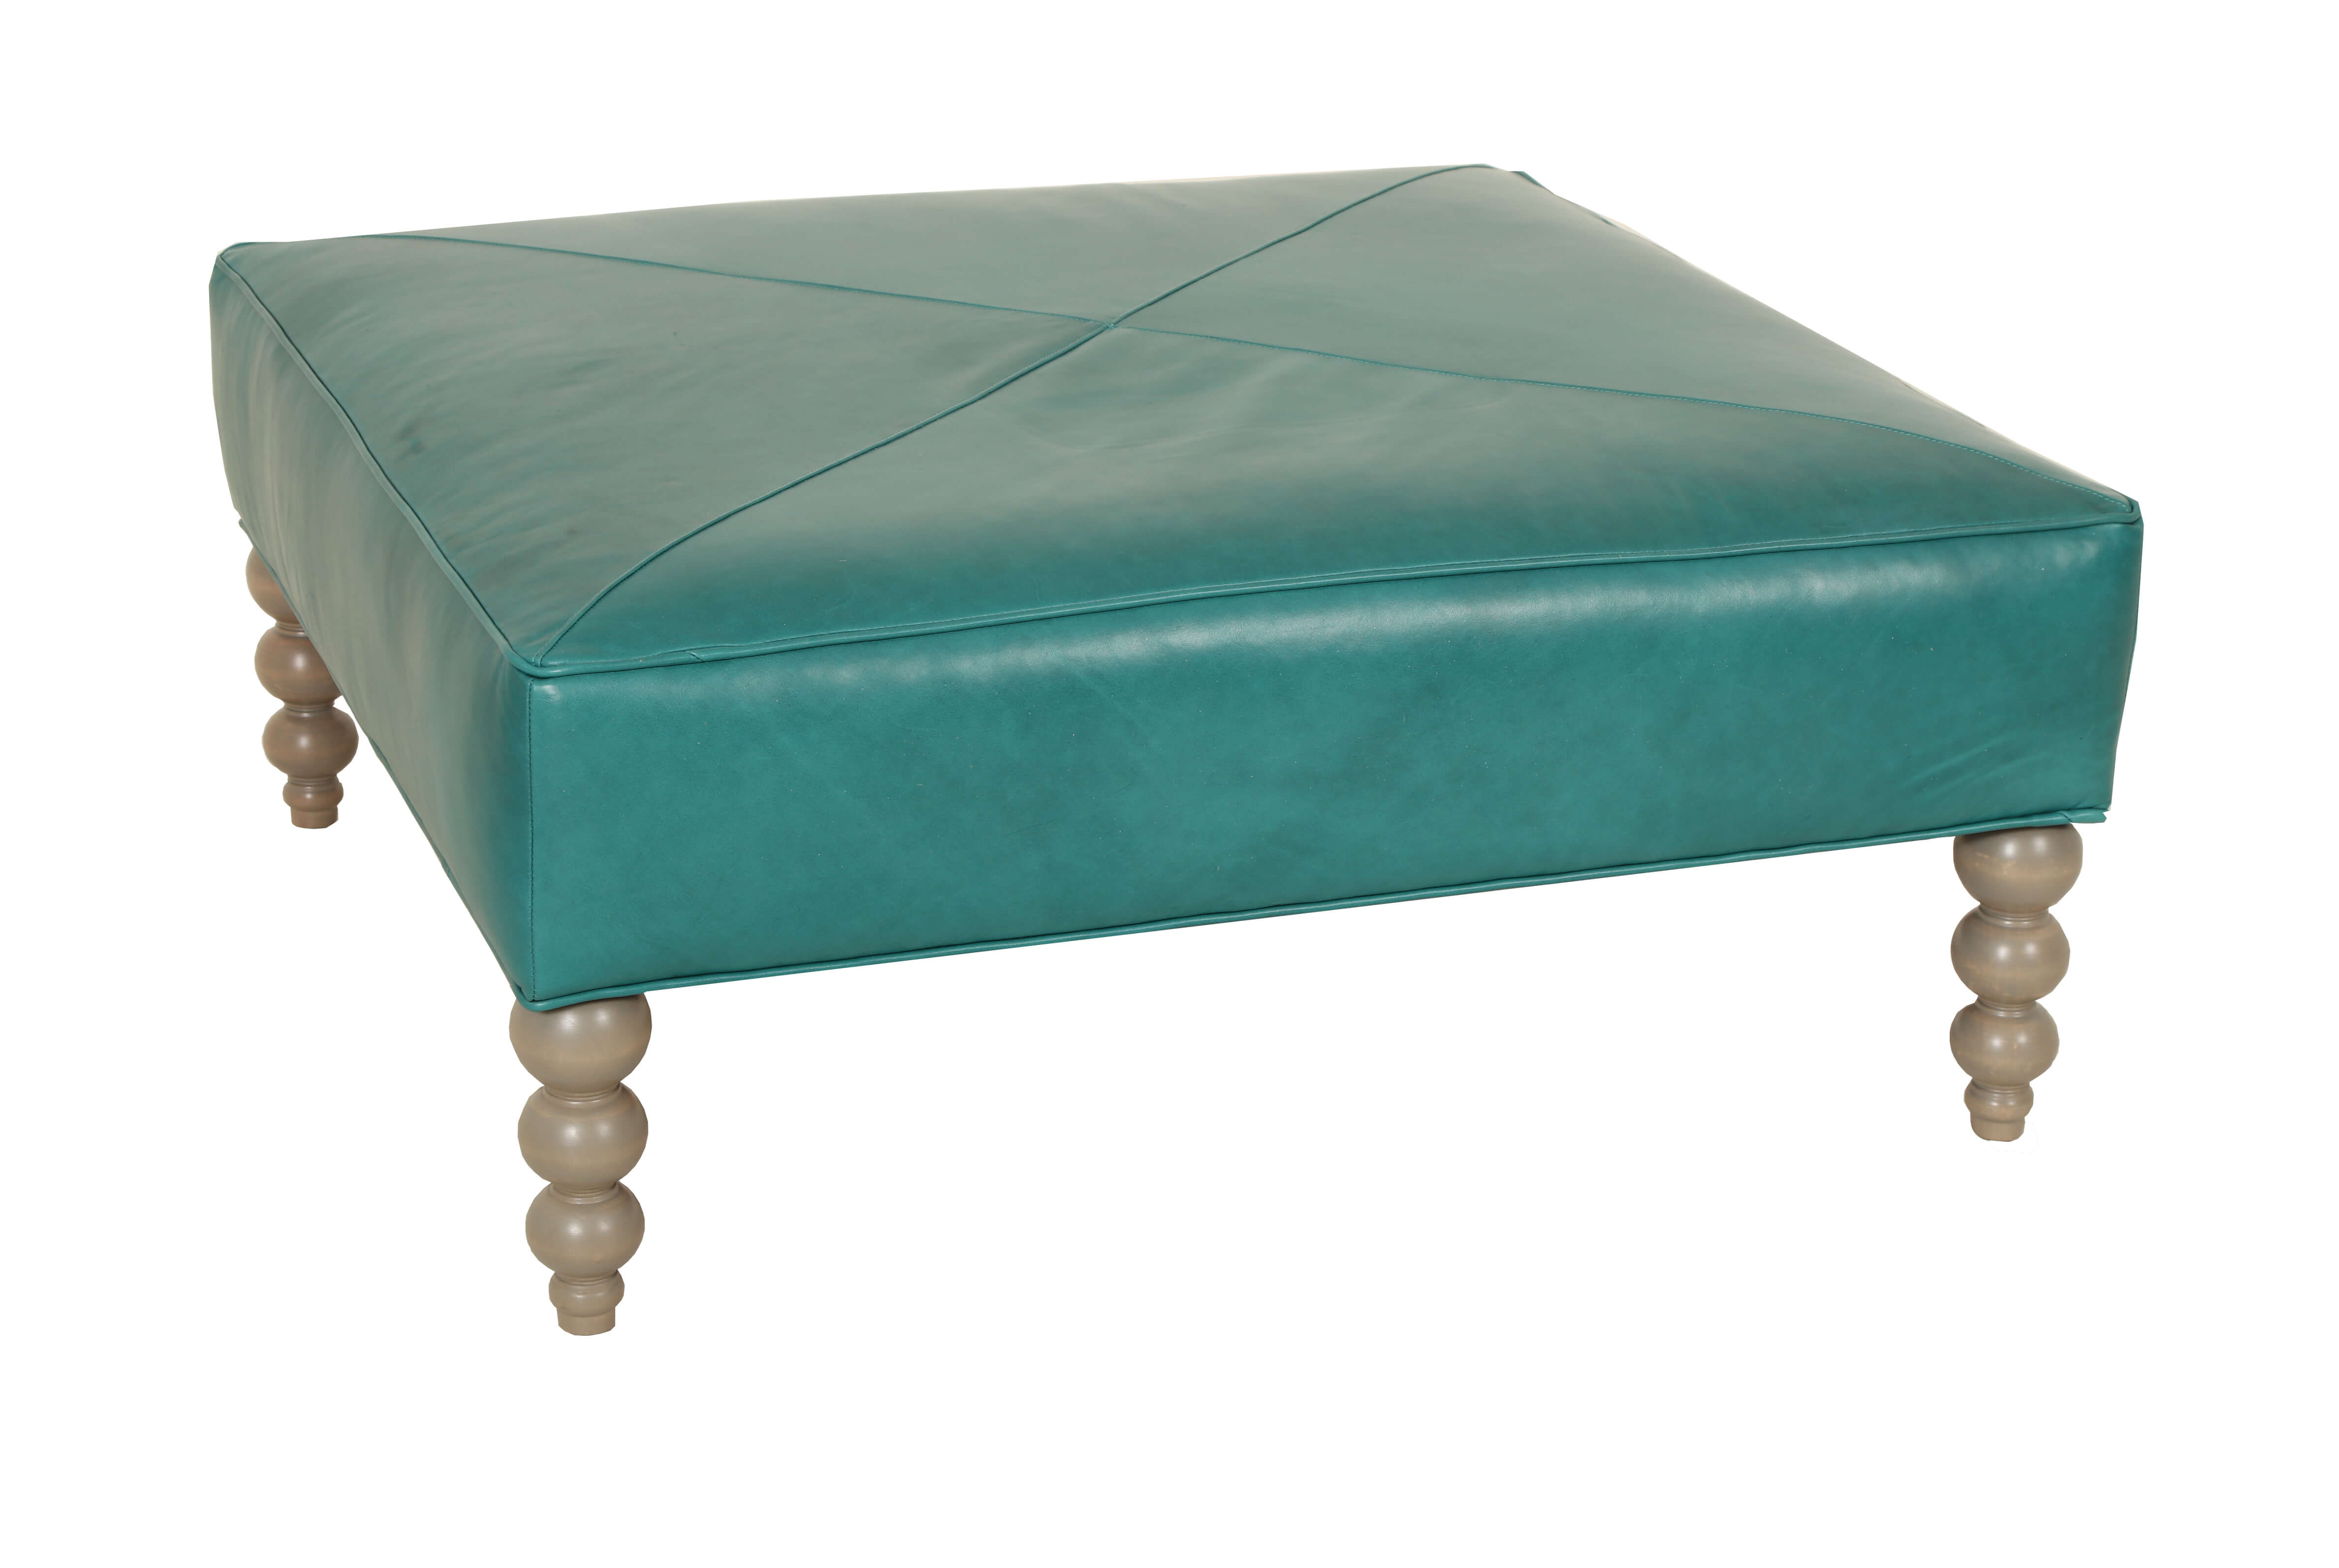 Rockport Square_Ottoman_Eclectic Collector